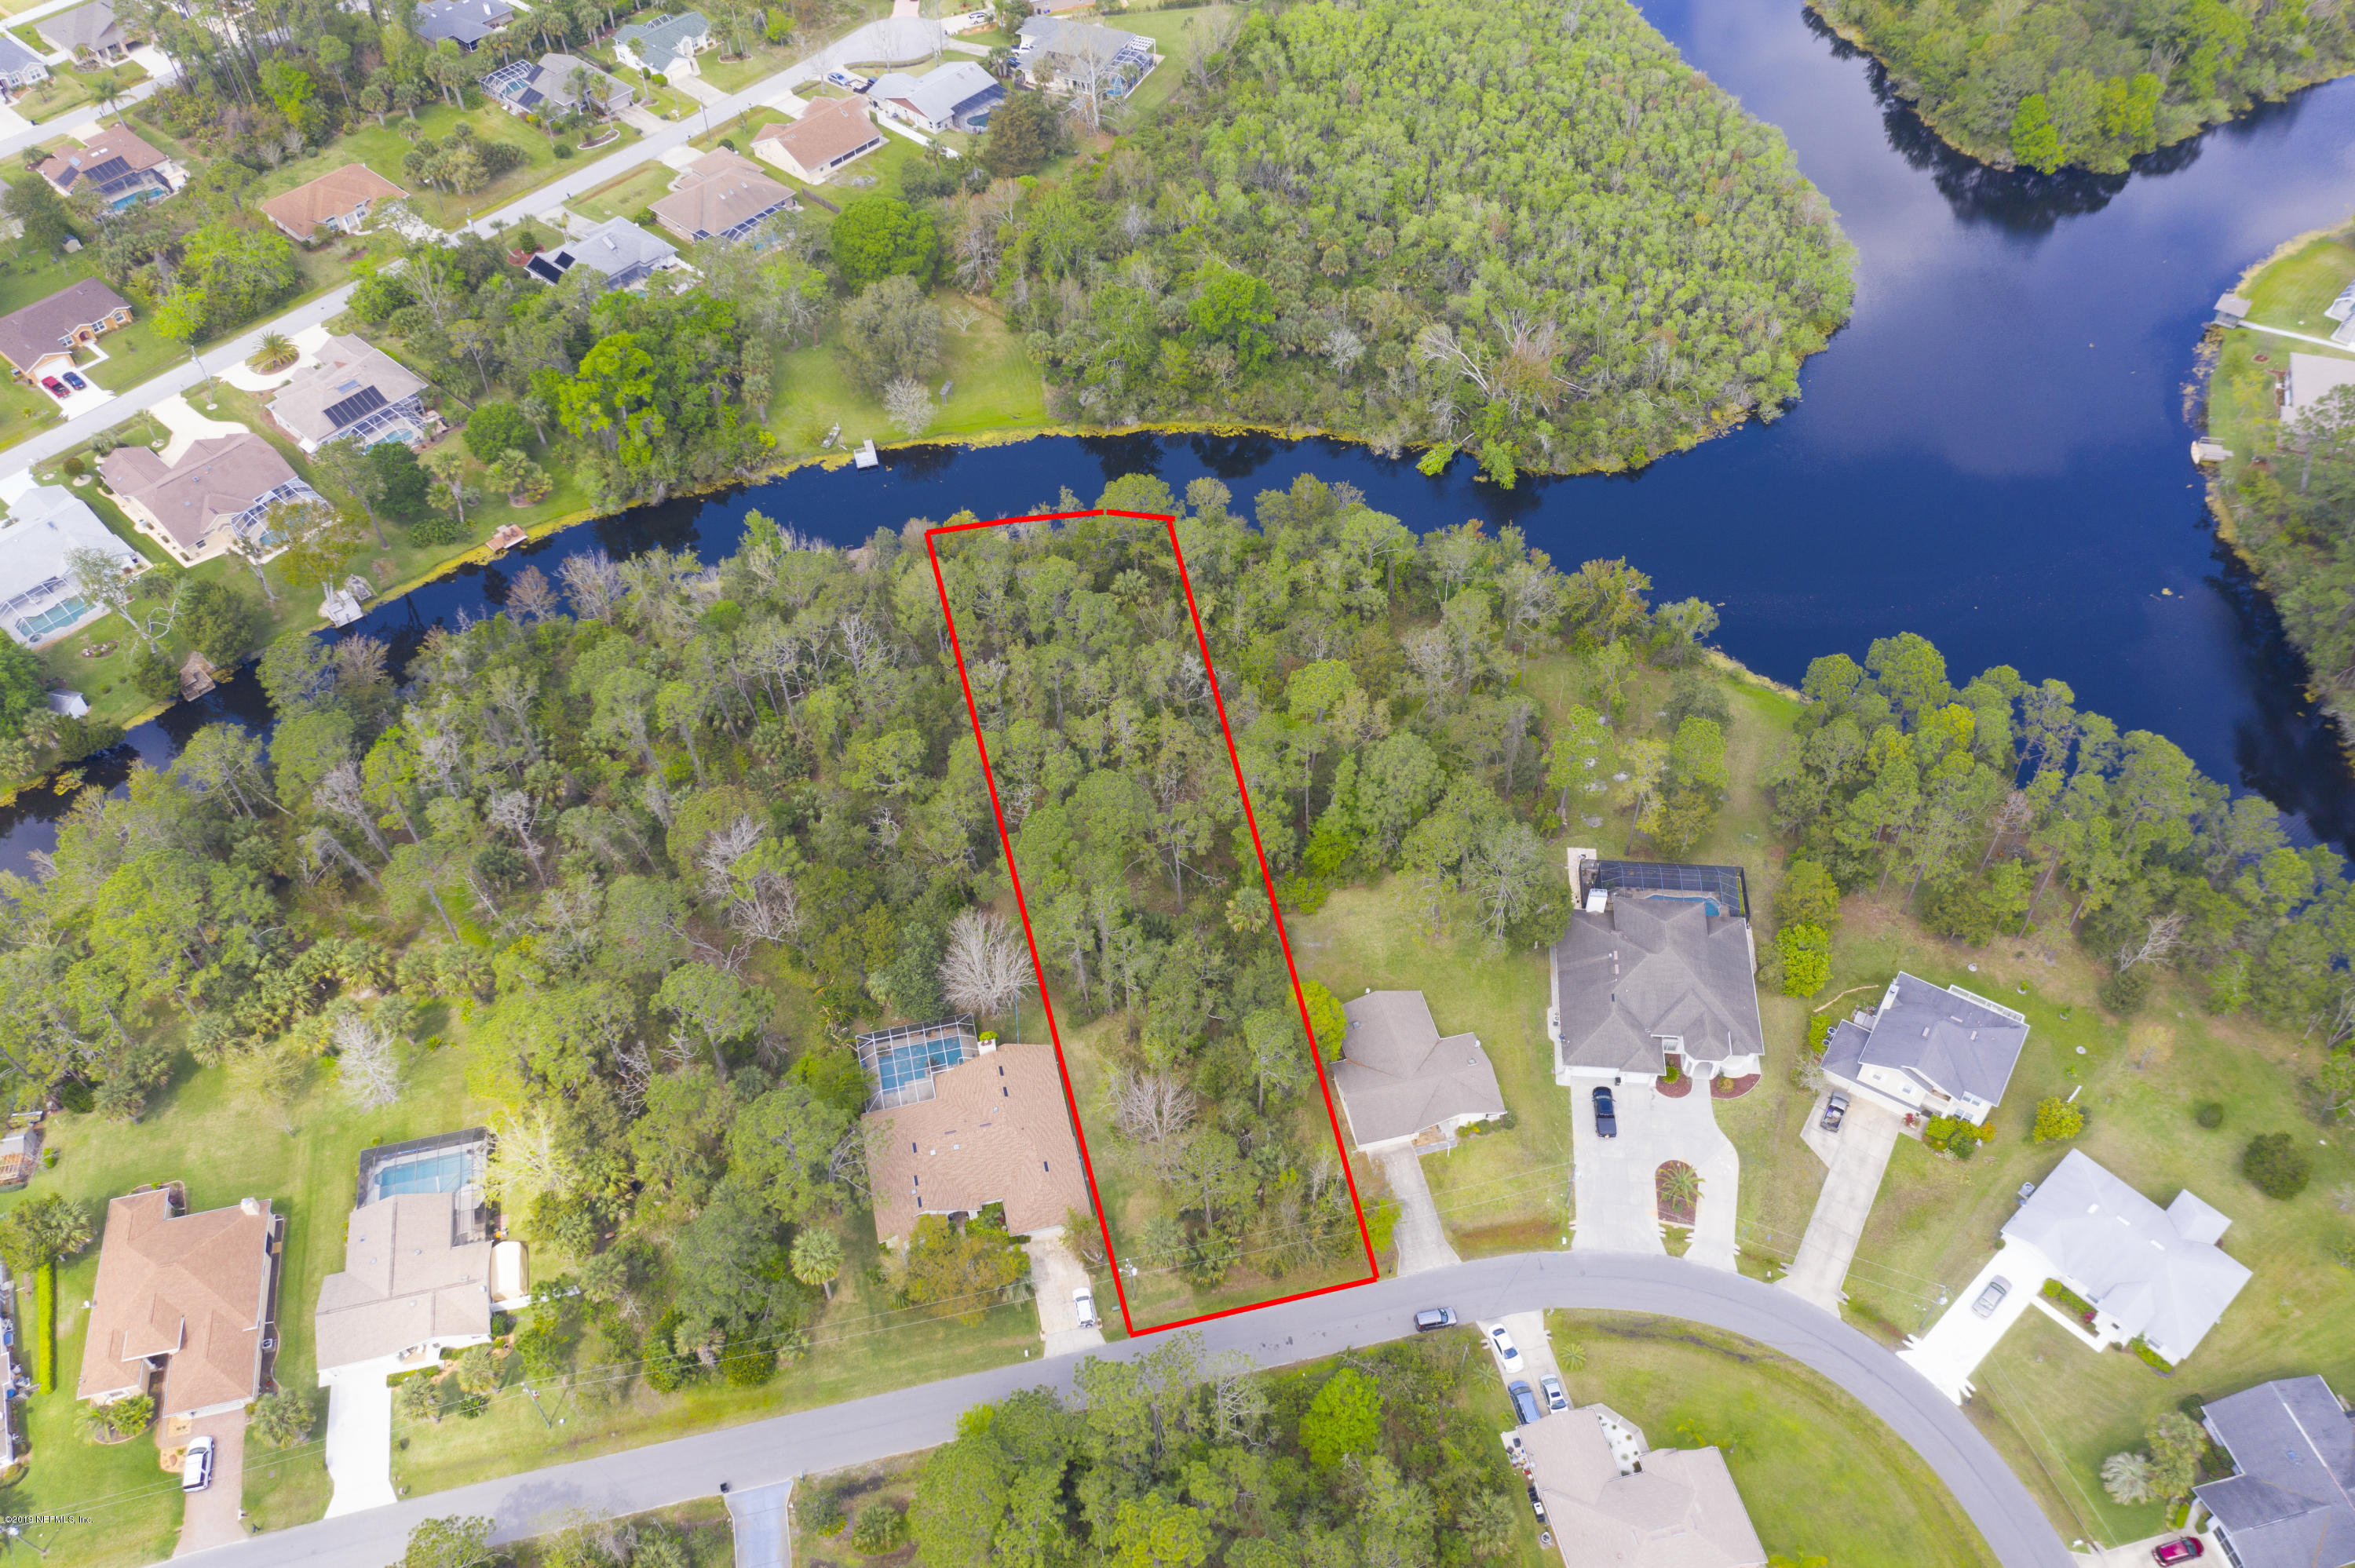 188 BEACHWAY, PALM COAST, FLORIDA 32137, ,Vacant land,For sale,BEACHWAY,985465